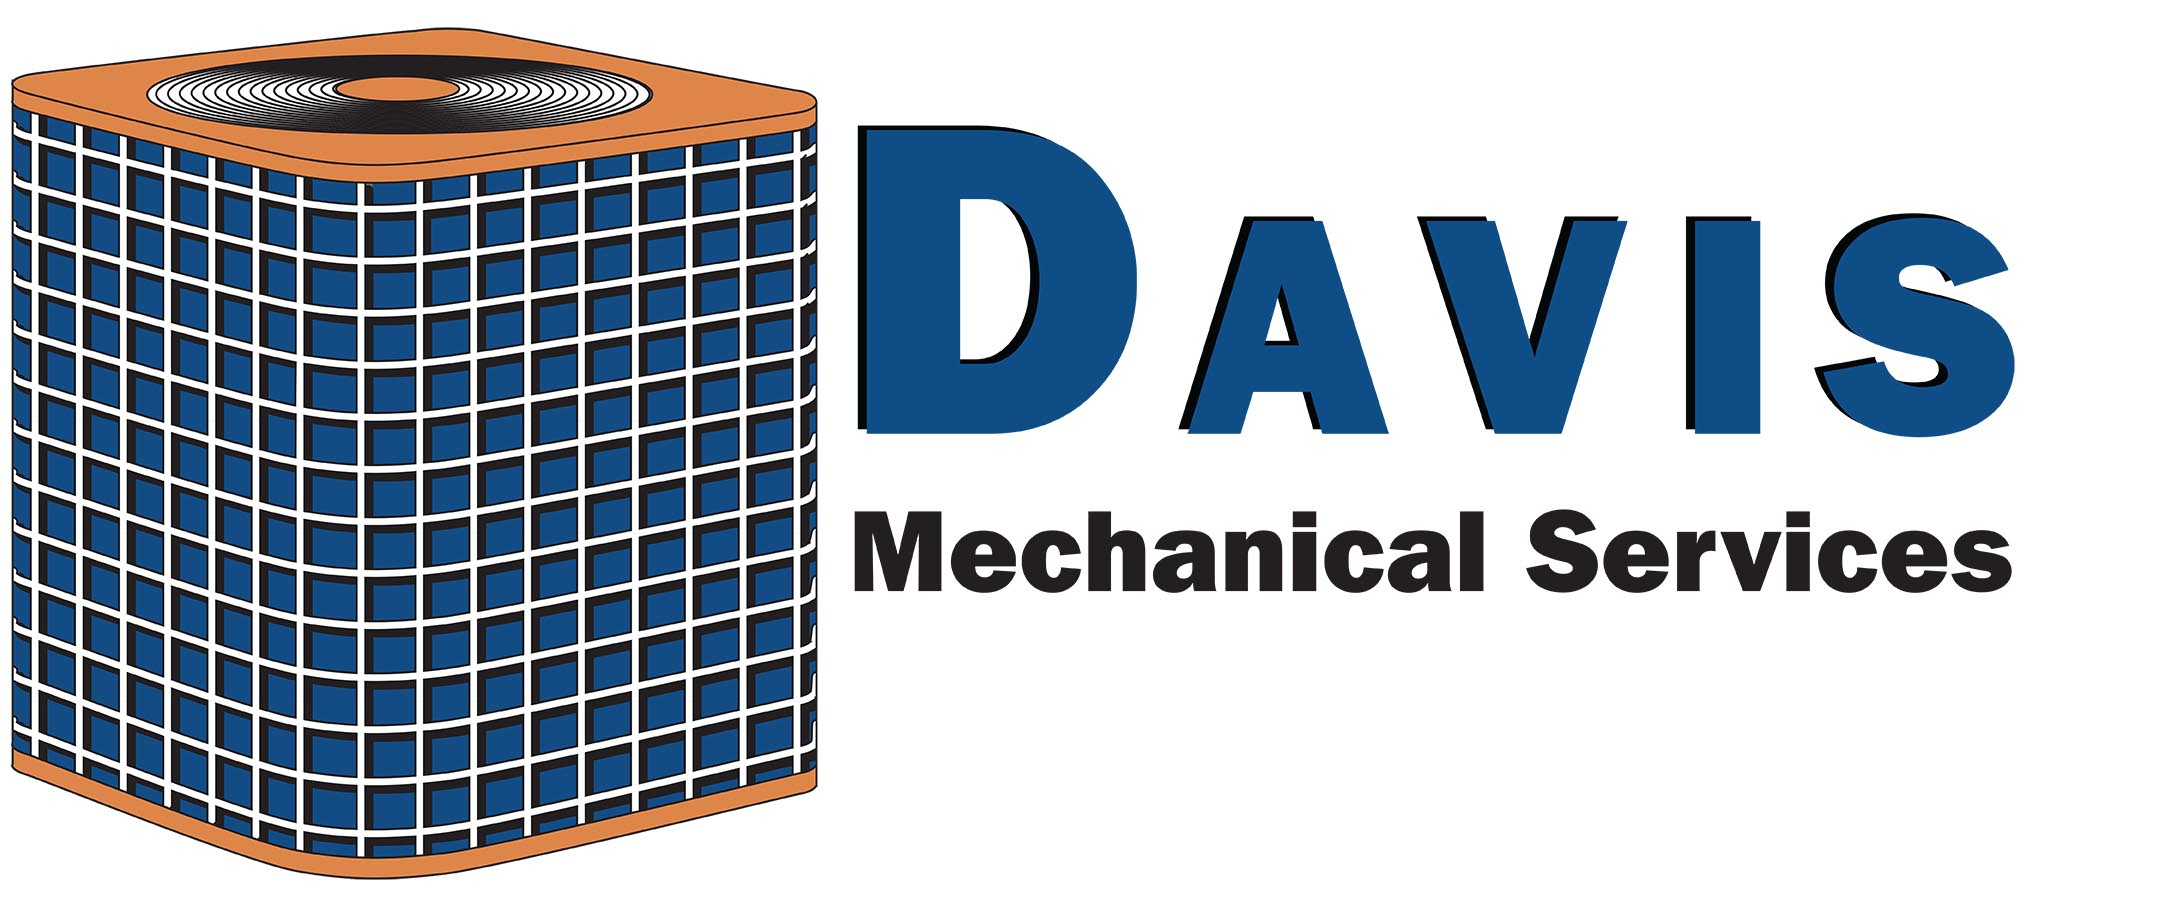 Davis Mechanical Services Fayetteville Georgia